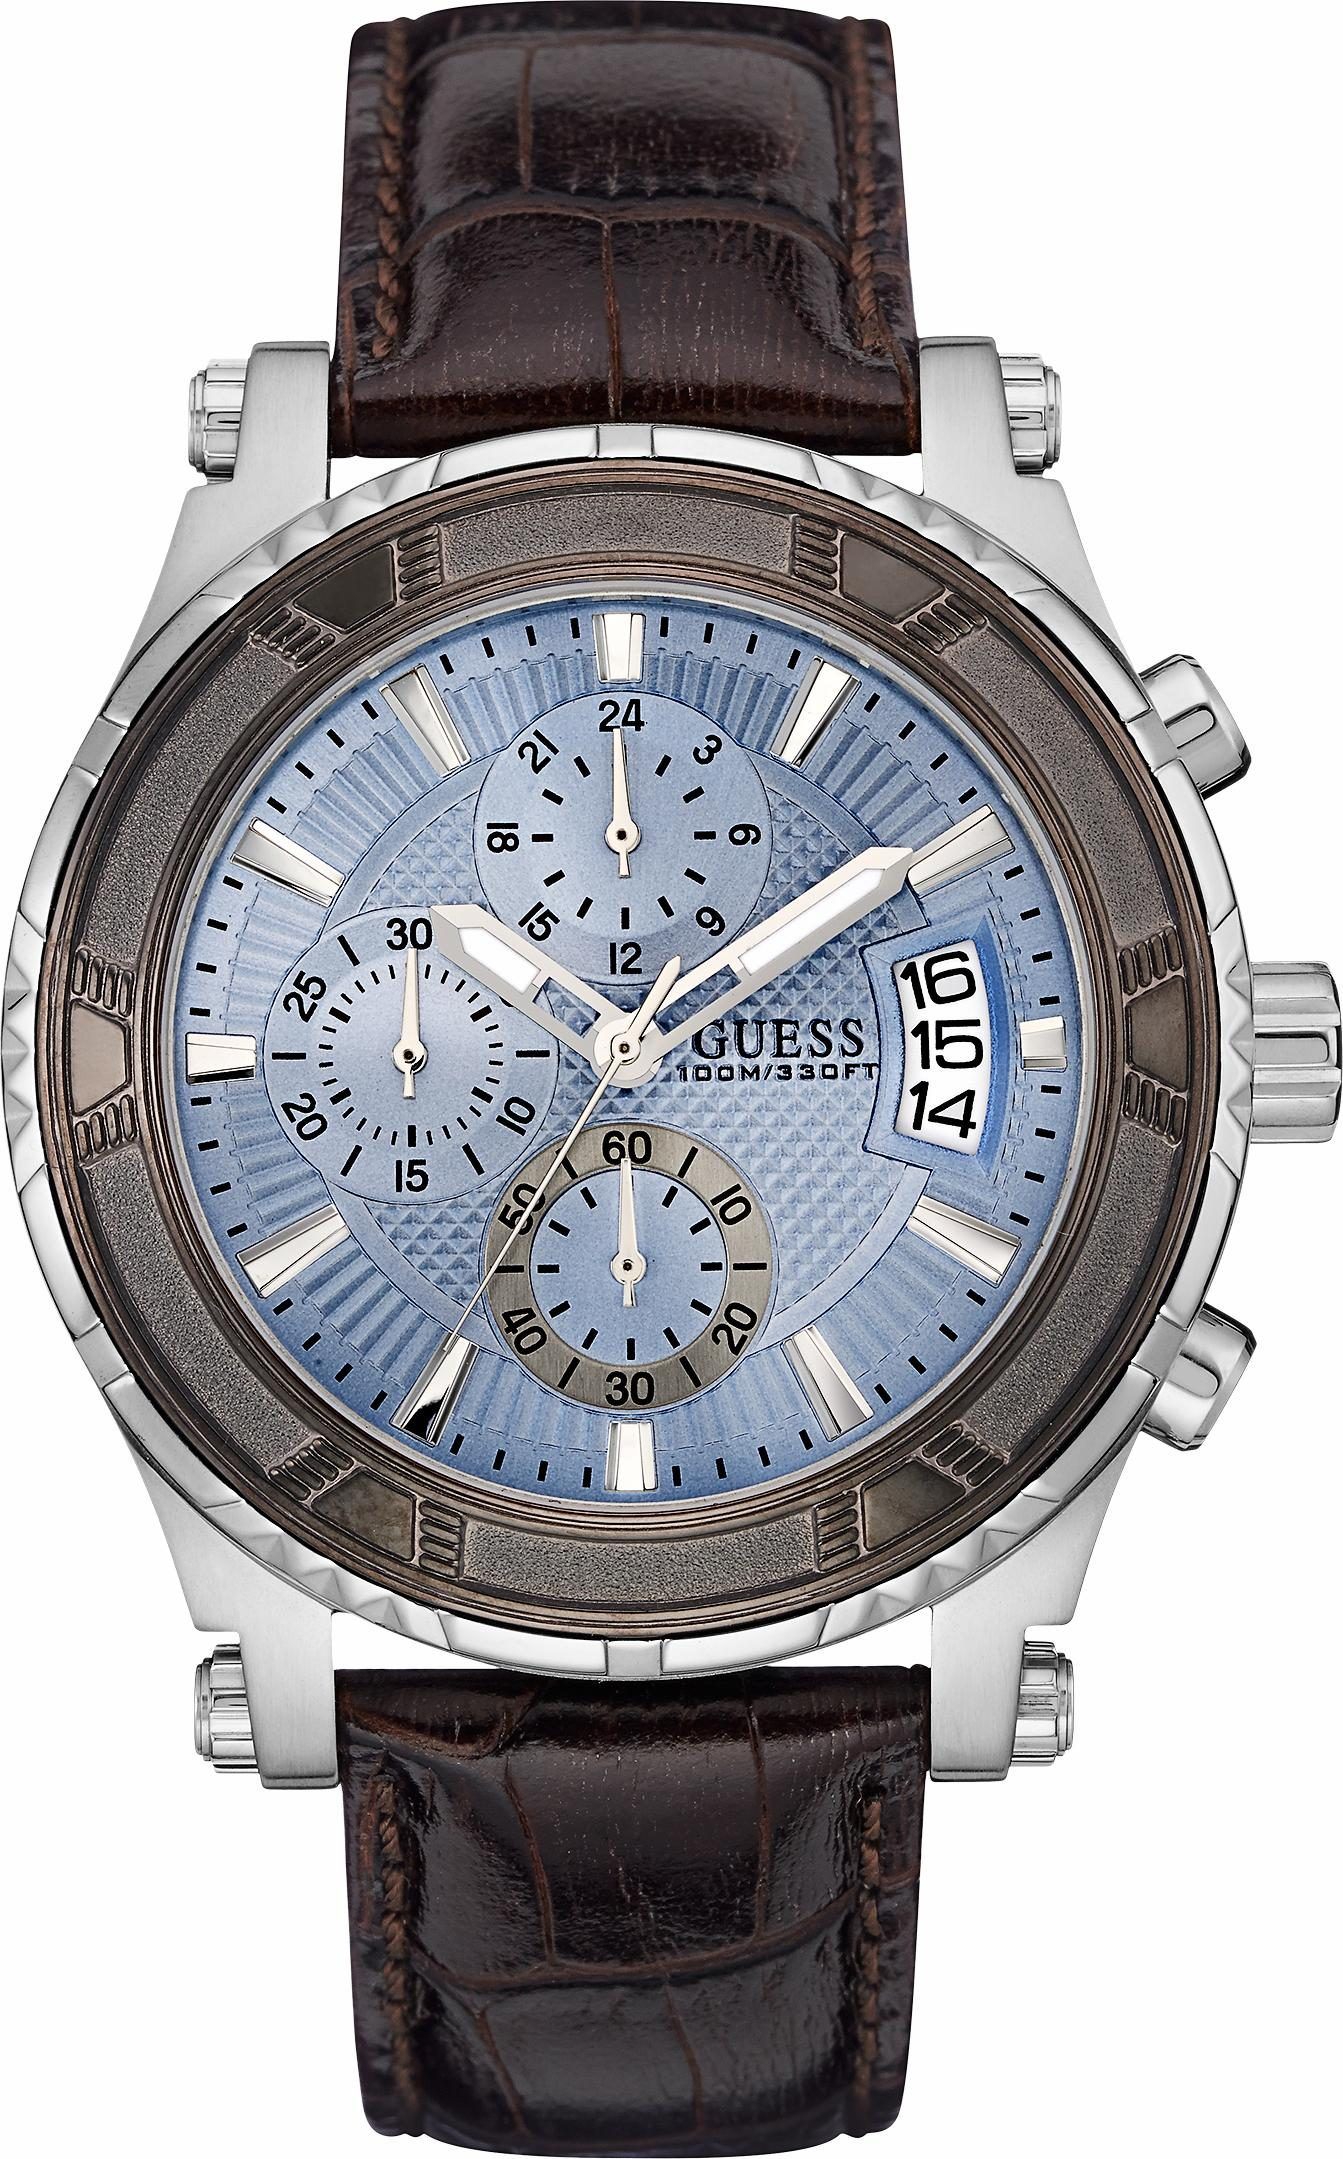 Guess Chronograph »W0673G1«